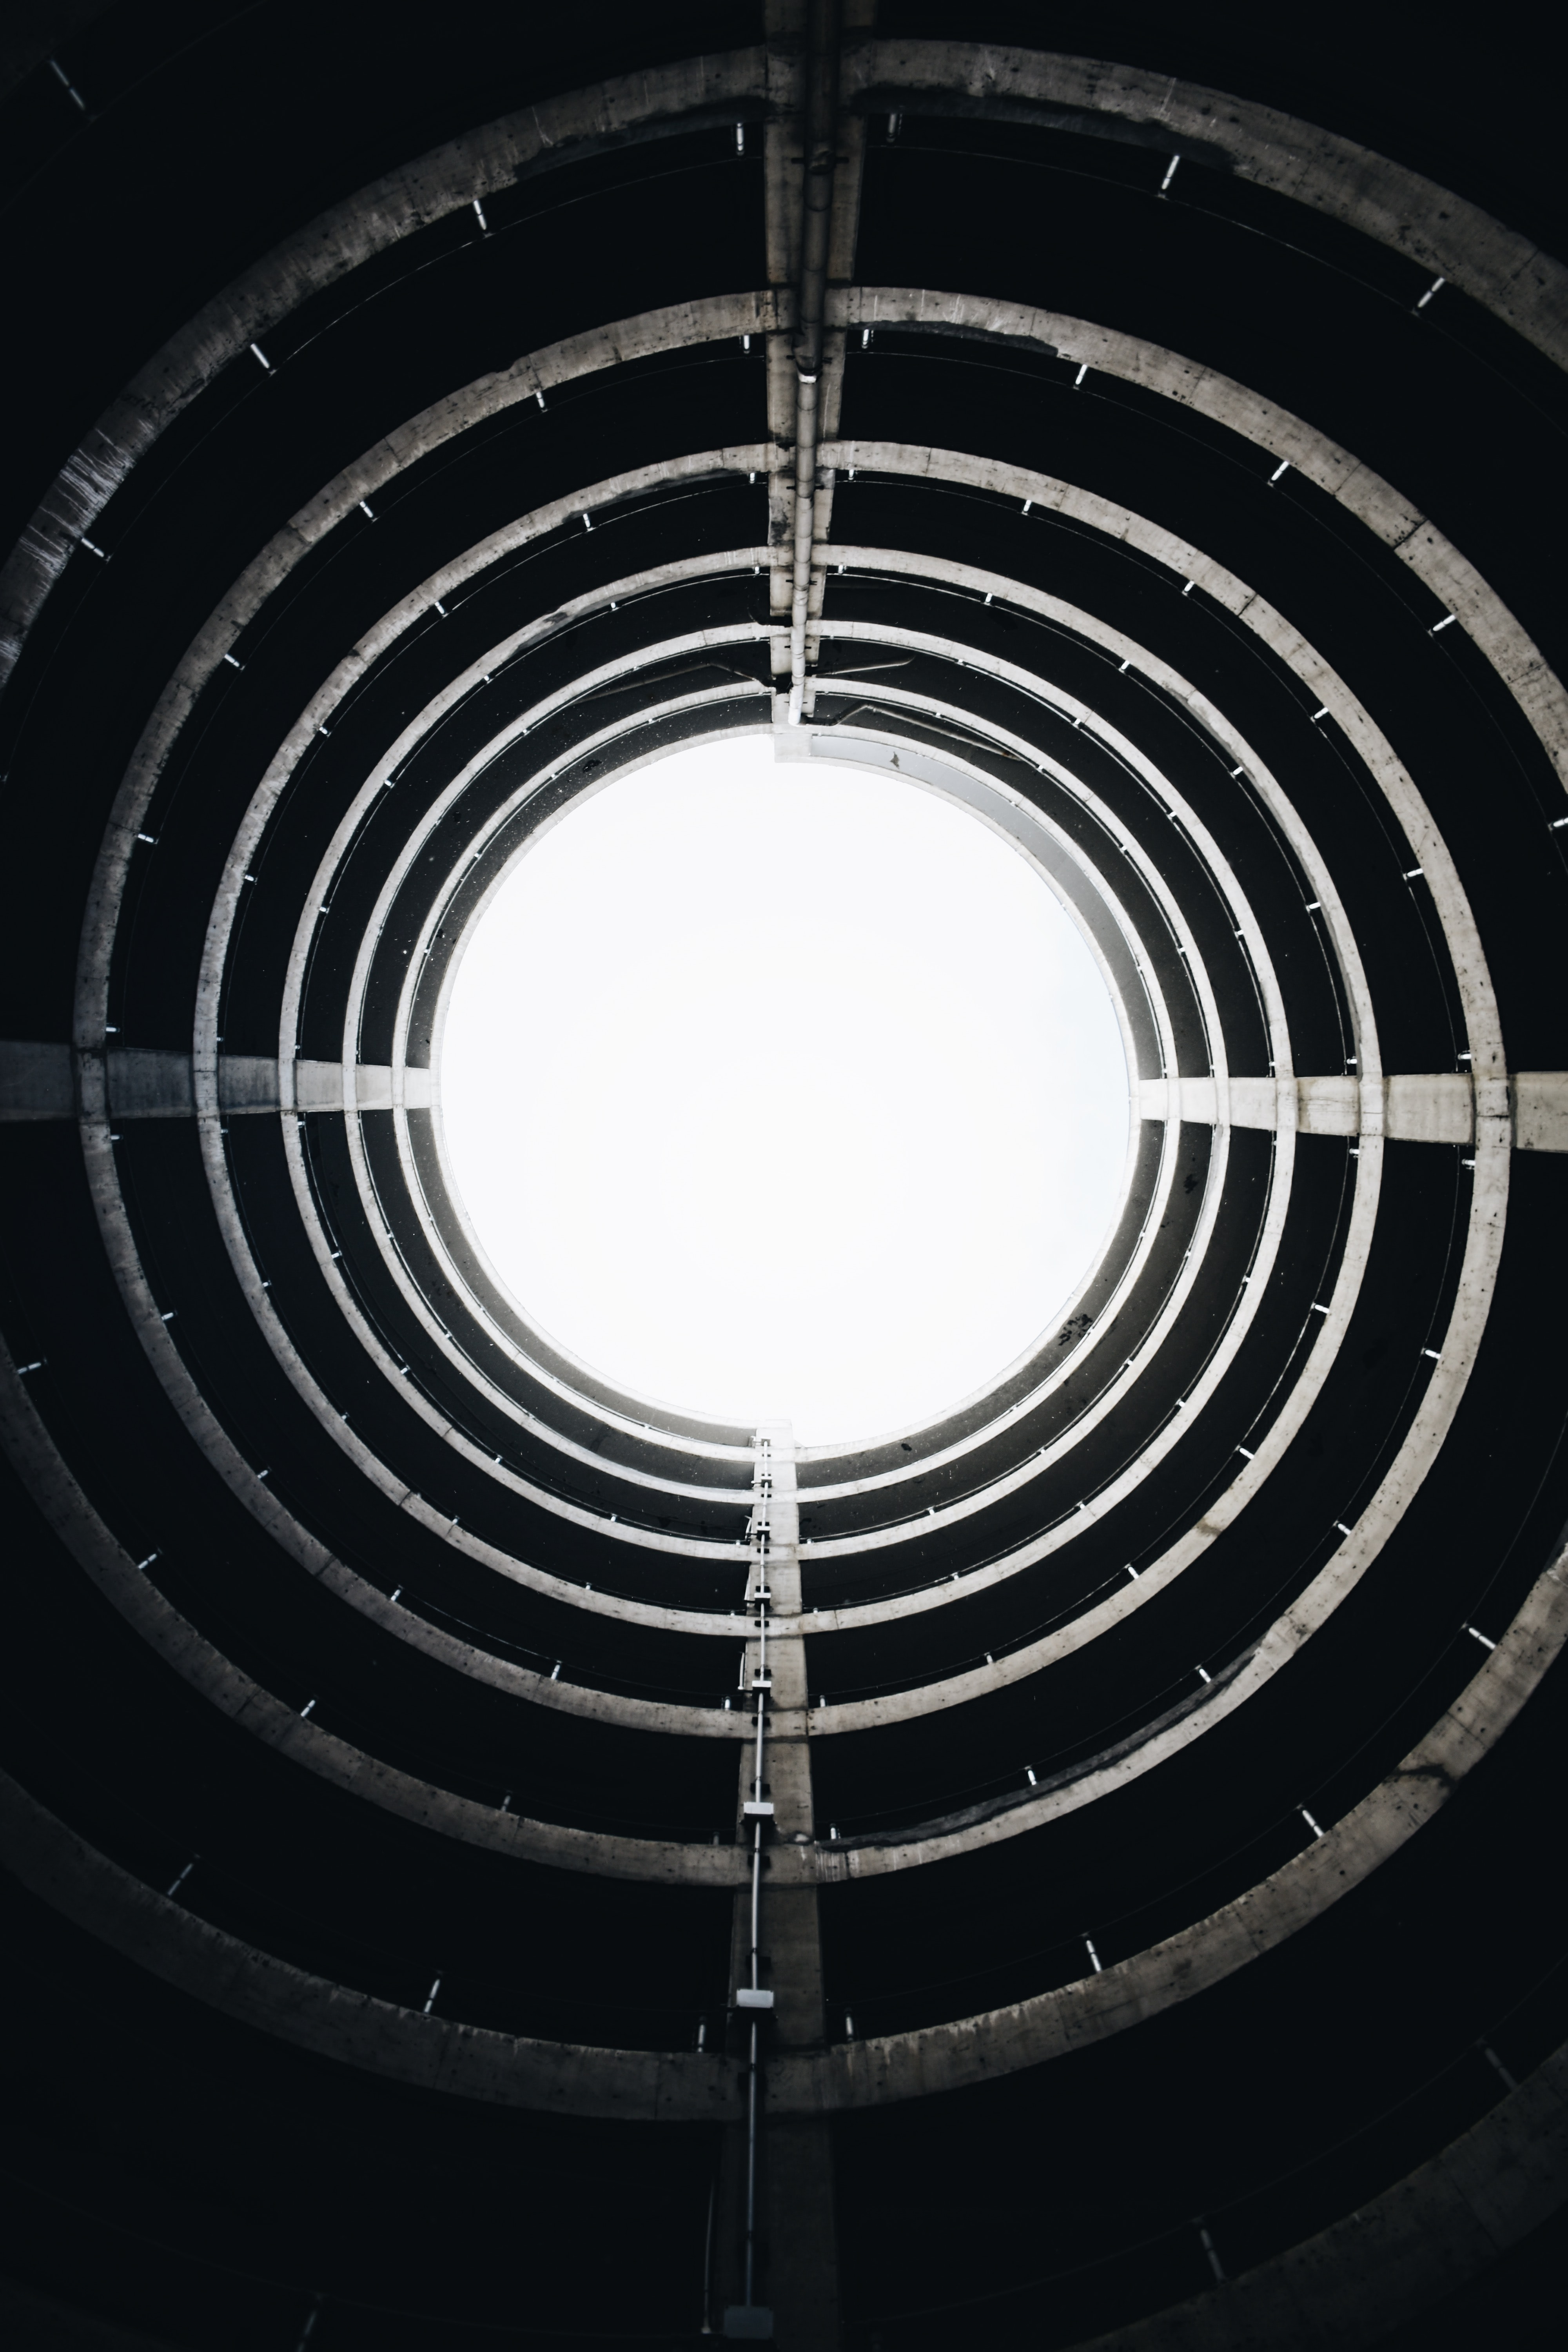 Black and white shot of circular spiral circular architecture from below with sky light